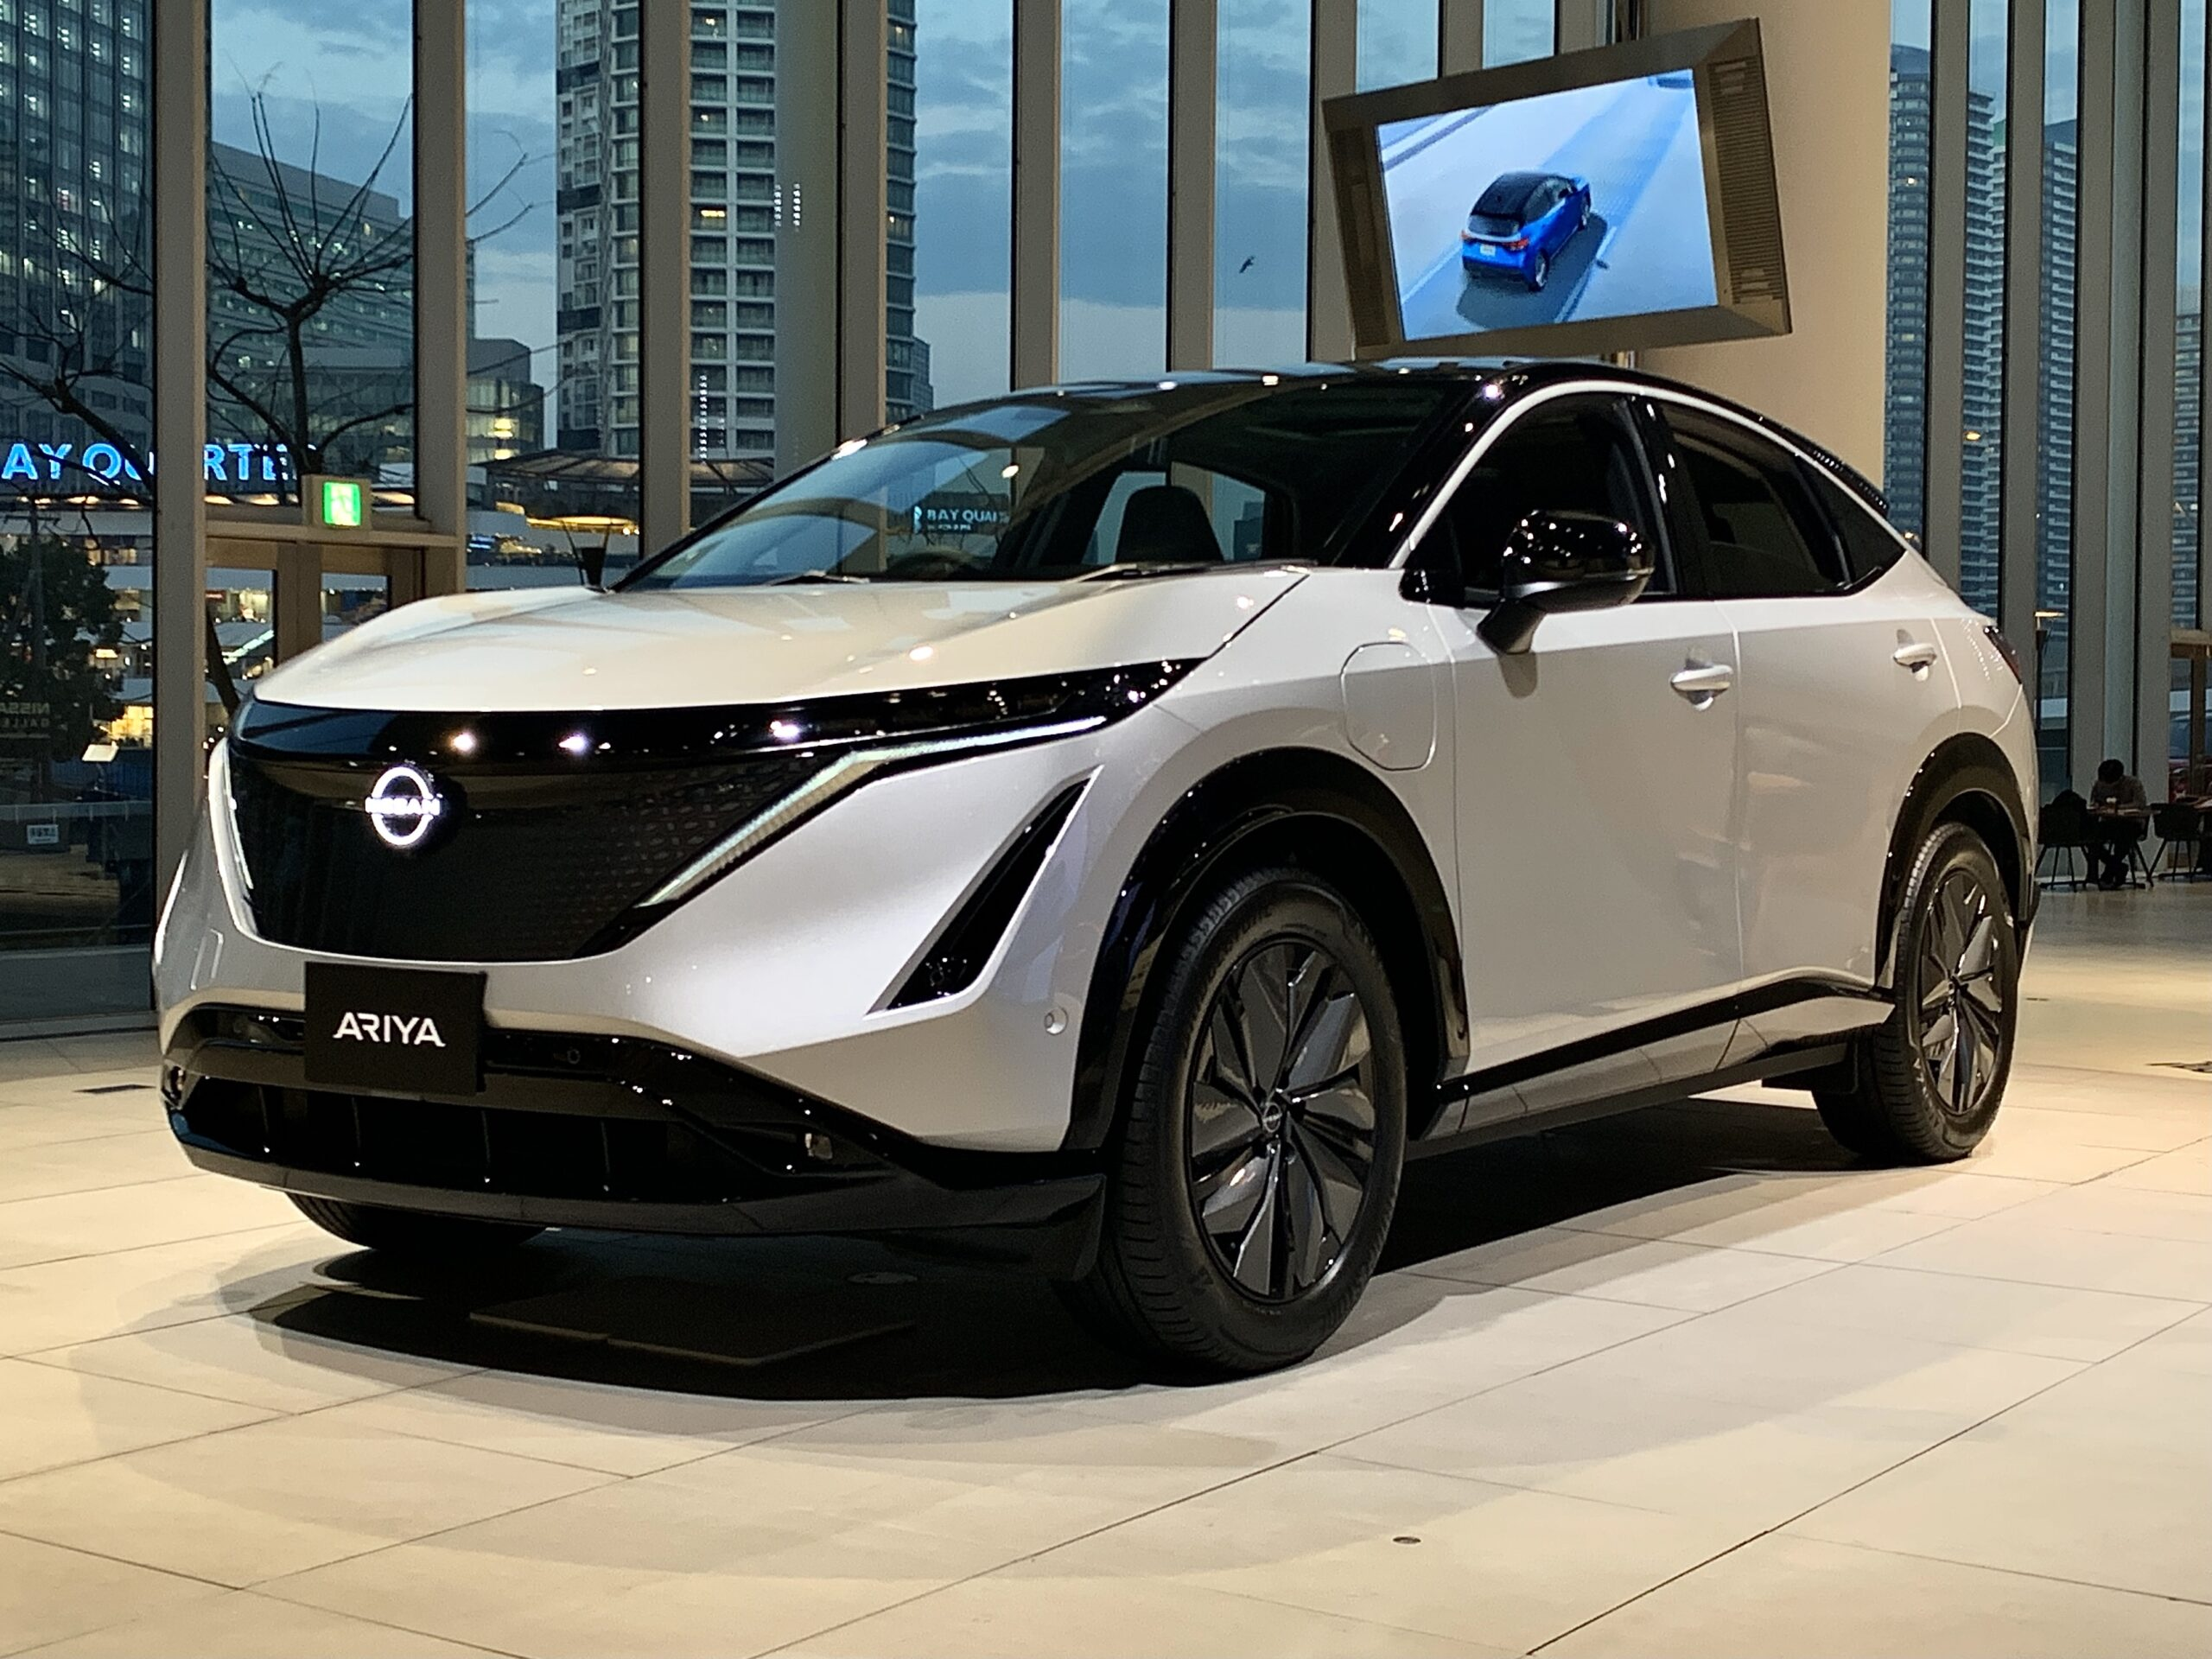 Why Pay For Gas When You Can Own These Electric Vehicles